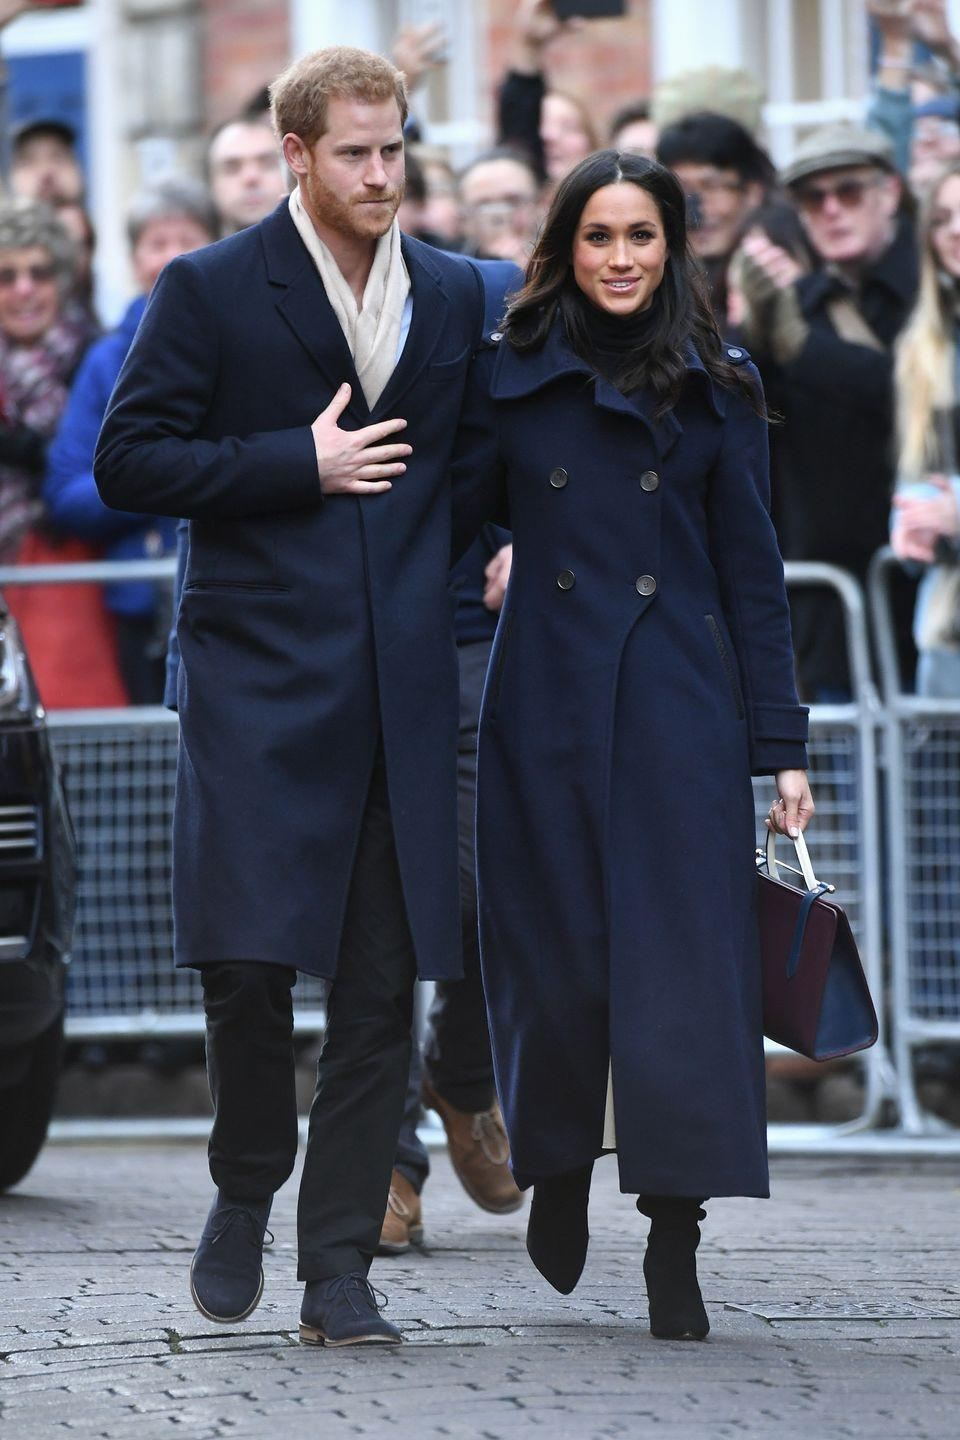 "<p>For her first official royal engagement, Meghan chose a navy blue, double-breasted coat from the <a href=""https://www.mackage.com/elodie-double-buttoned-tailored-flat-wool-coat/ELODIE.html?dwvar_ELODIE_color=COL540&cgid=women-wool-coats#start=1&cgid=women-wool-coats"" rel=""nofollow noopener"" target=""_blank"" data-ylk=""slk:Canadian line Mackage"" class=""link rapid-noclick-resp"">Canadian line Mackage</a> over a black turtleneck, tan skirt, and color-blocked handbag from <a href=""https://www.strathberry.com/collections/the-strathberry-midi-tote/products/the-strathberry-midi-tote-tri-colour-burgundy-navy-vanilla?"" rel=""nofollow noopener"" target=""_blank"" data-ylk=""slk:Scottish brand Strathberry"" class=""link rapid-noclick-resp"">Scottish brand Strathberry</a>.</p>"